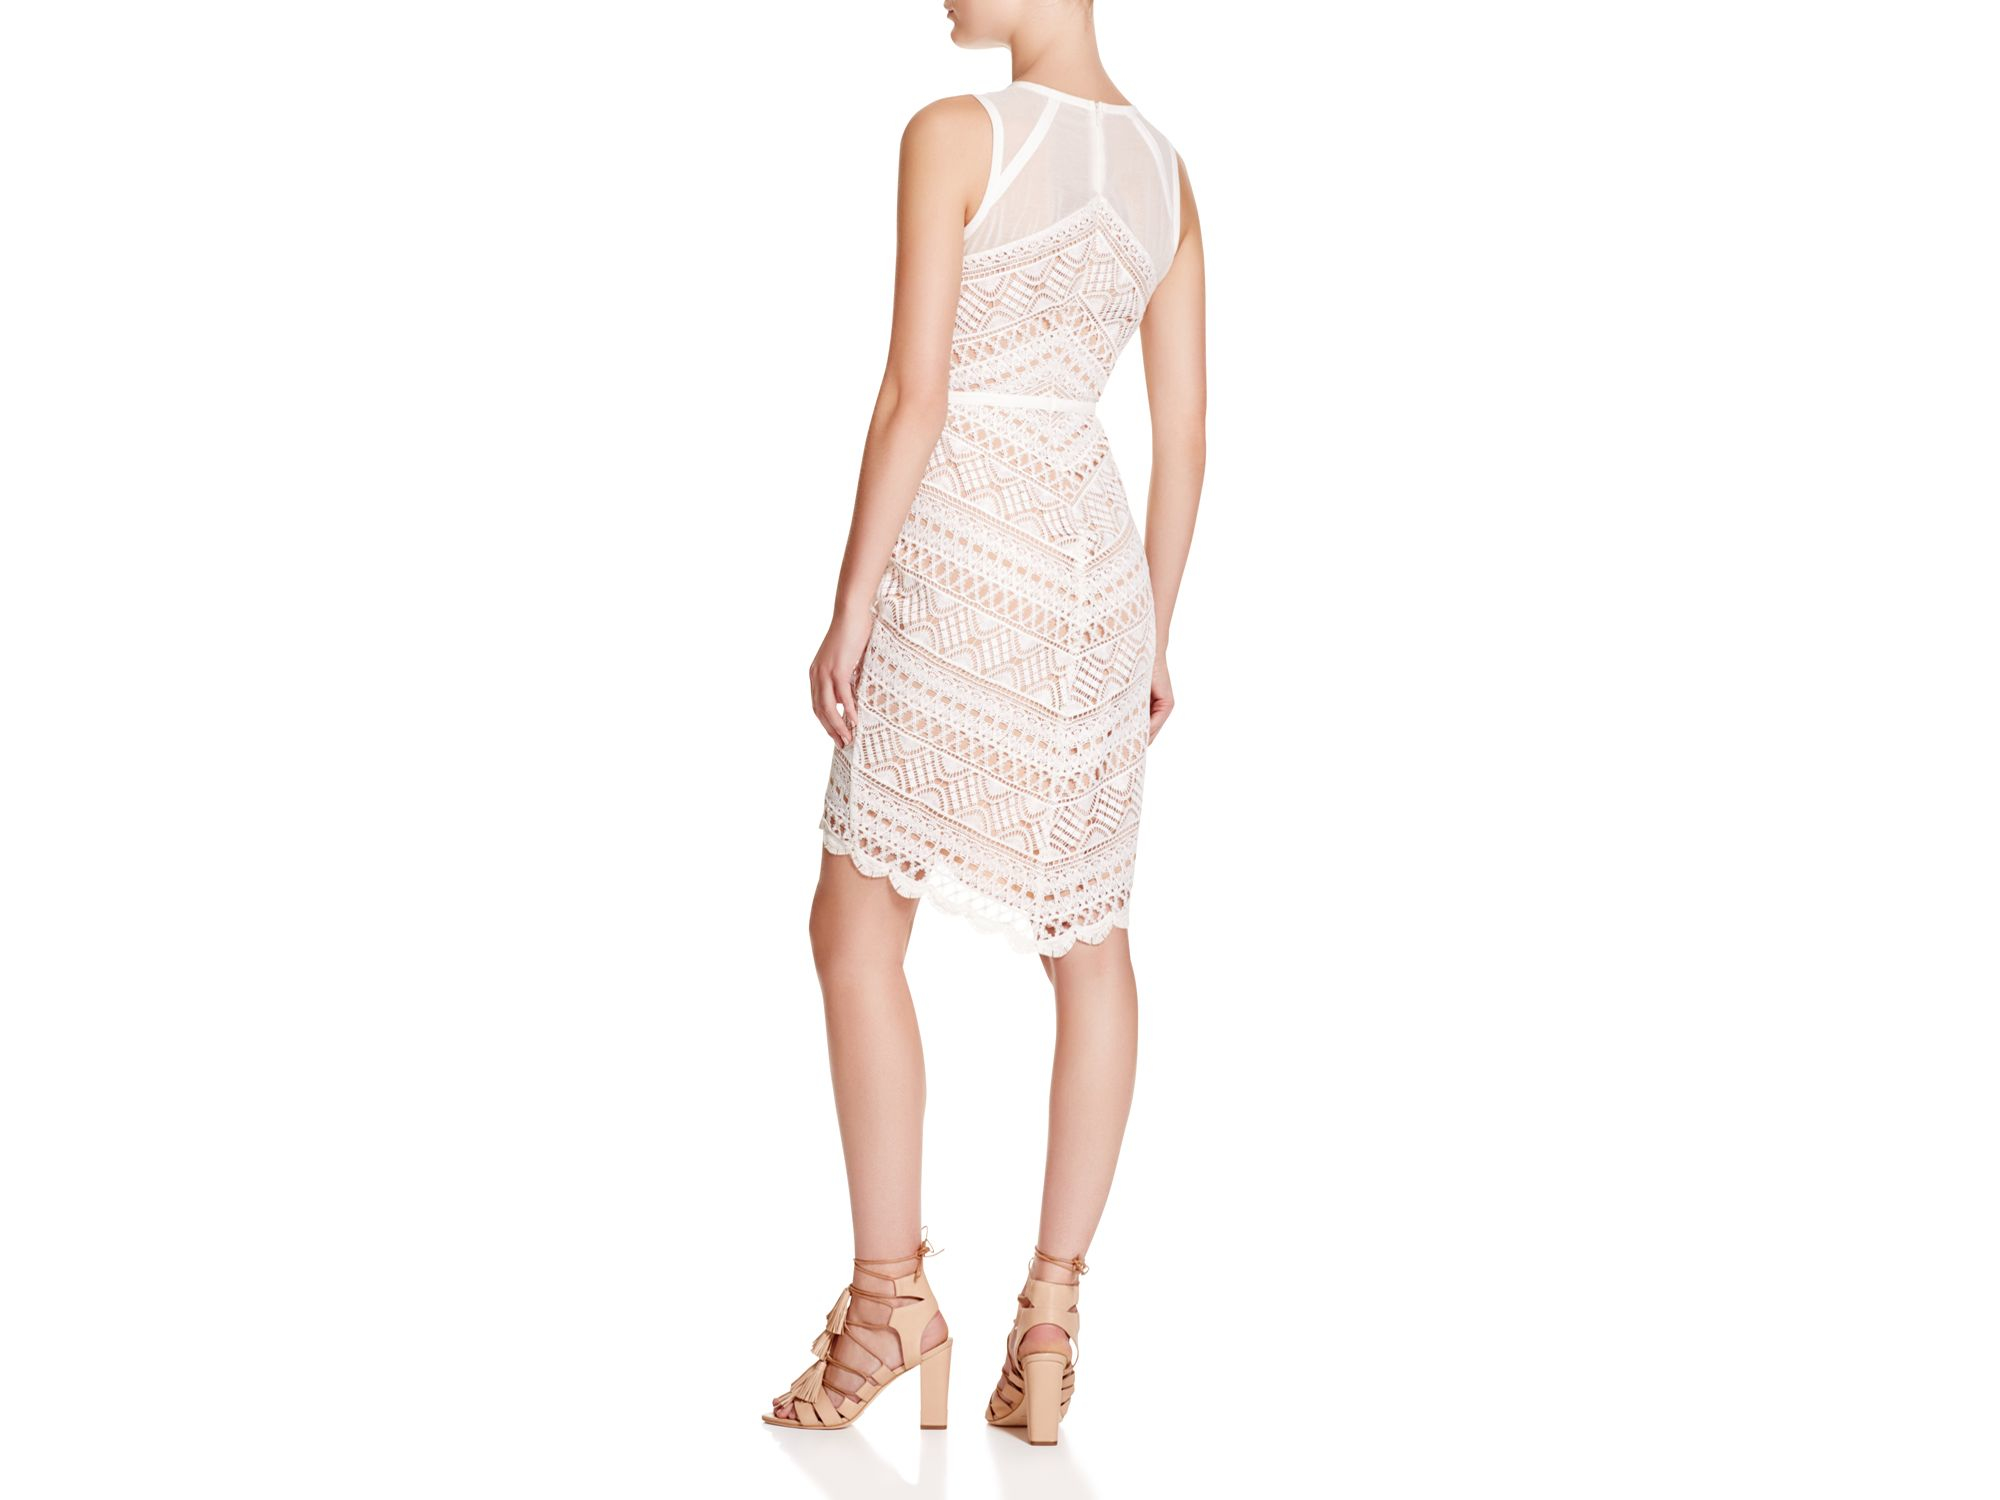 b80ad1abef619 Lyst - Adelyn Rae Lace Dress in Pink